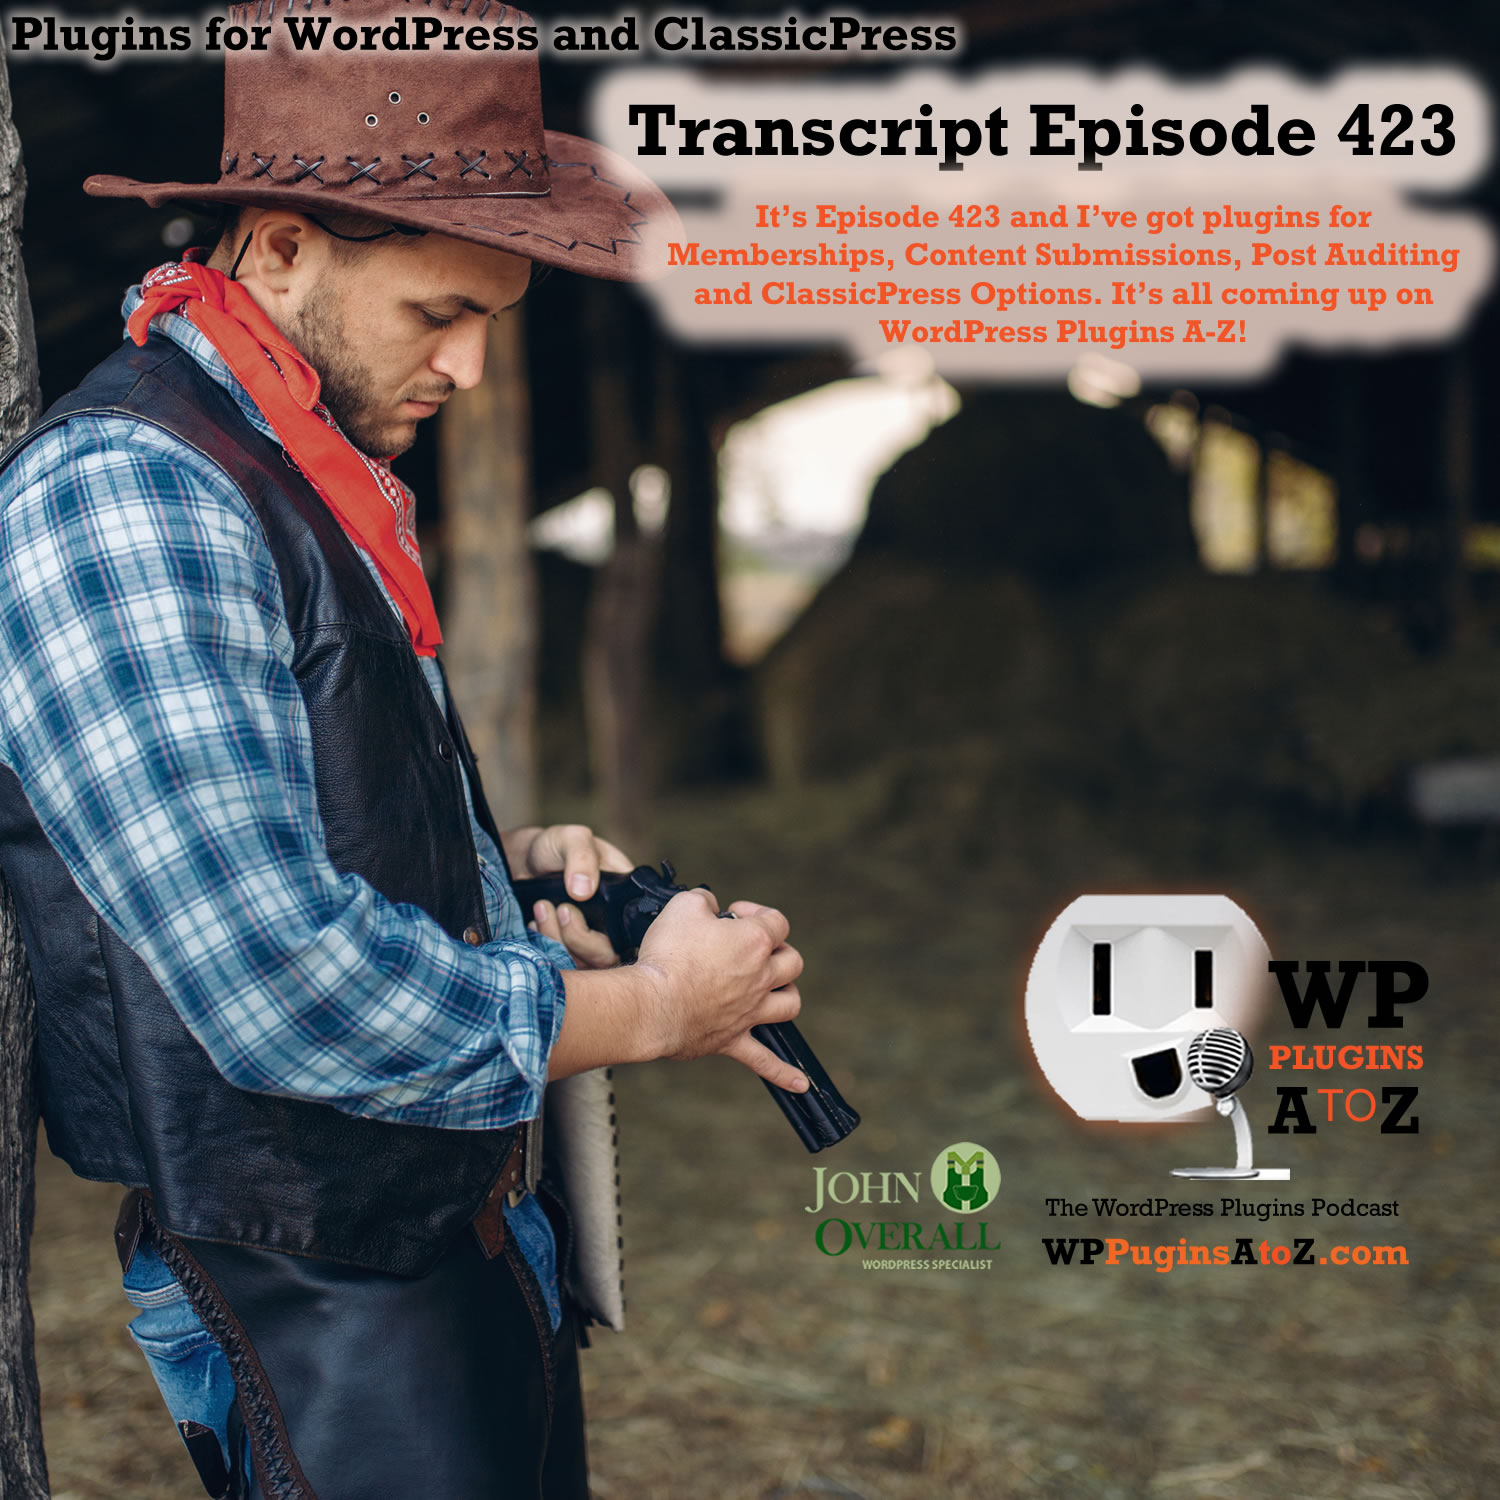 It's Episode 423 and I've got plugins for Memberships, Content Submissions, Post Auditing and ClassicPress Options, all coming up on WordPress Plugins A-Z!